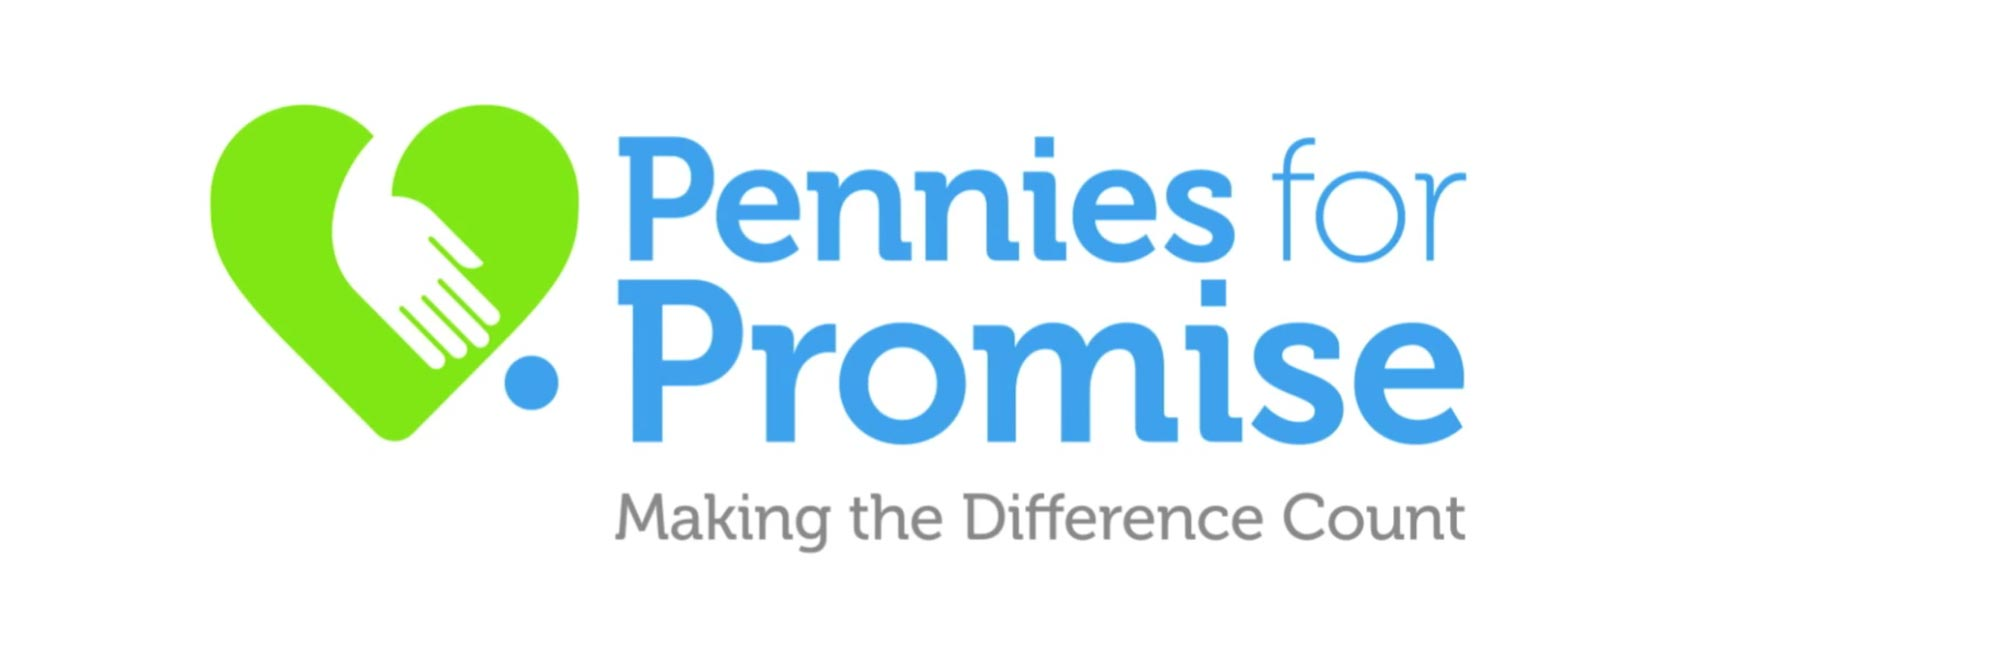 pennies-for-promise.jpg#asset:267